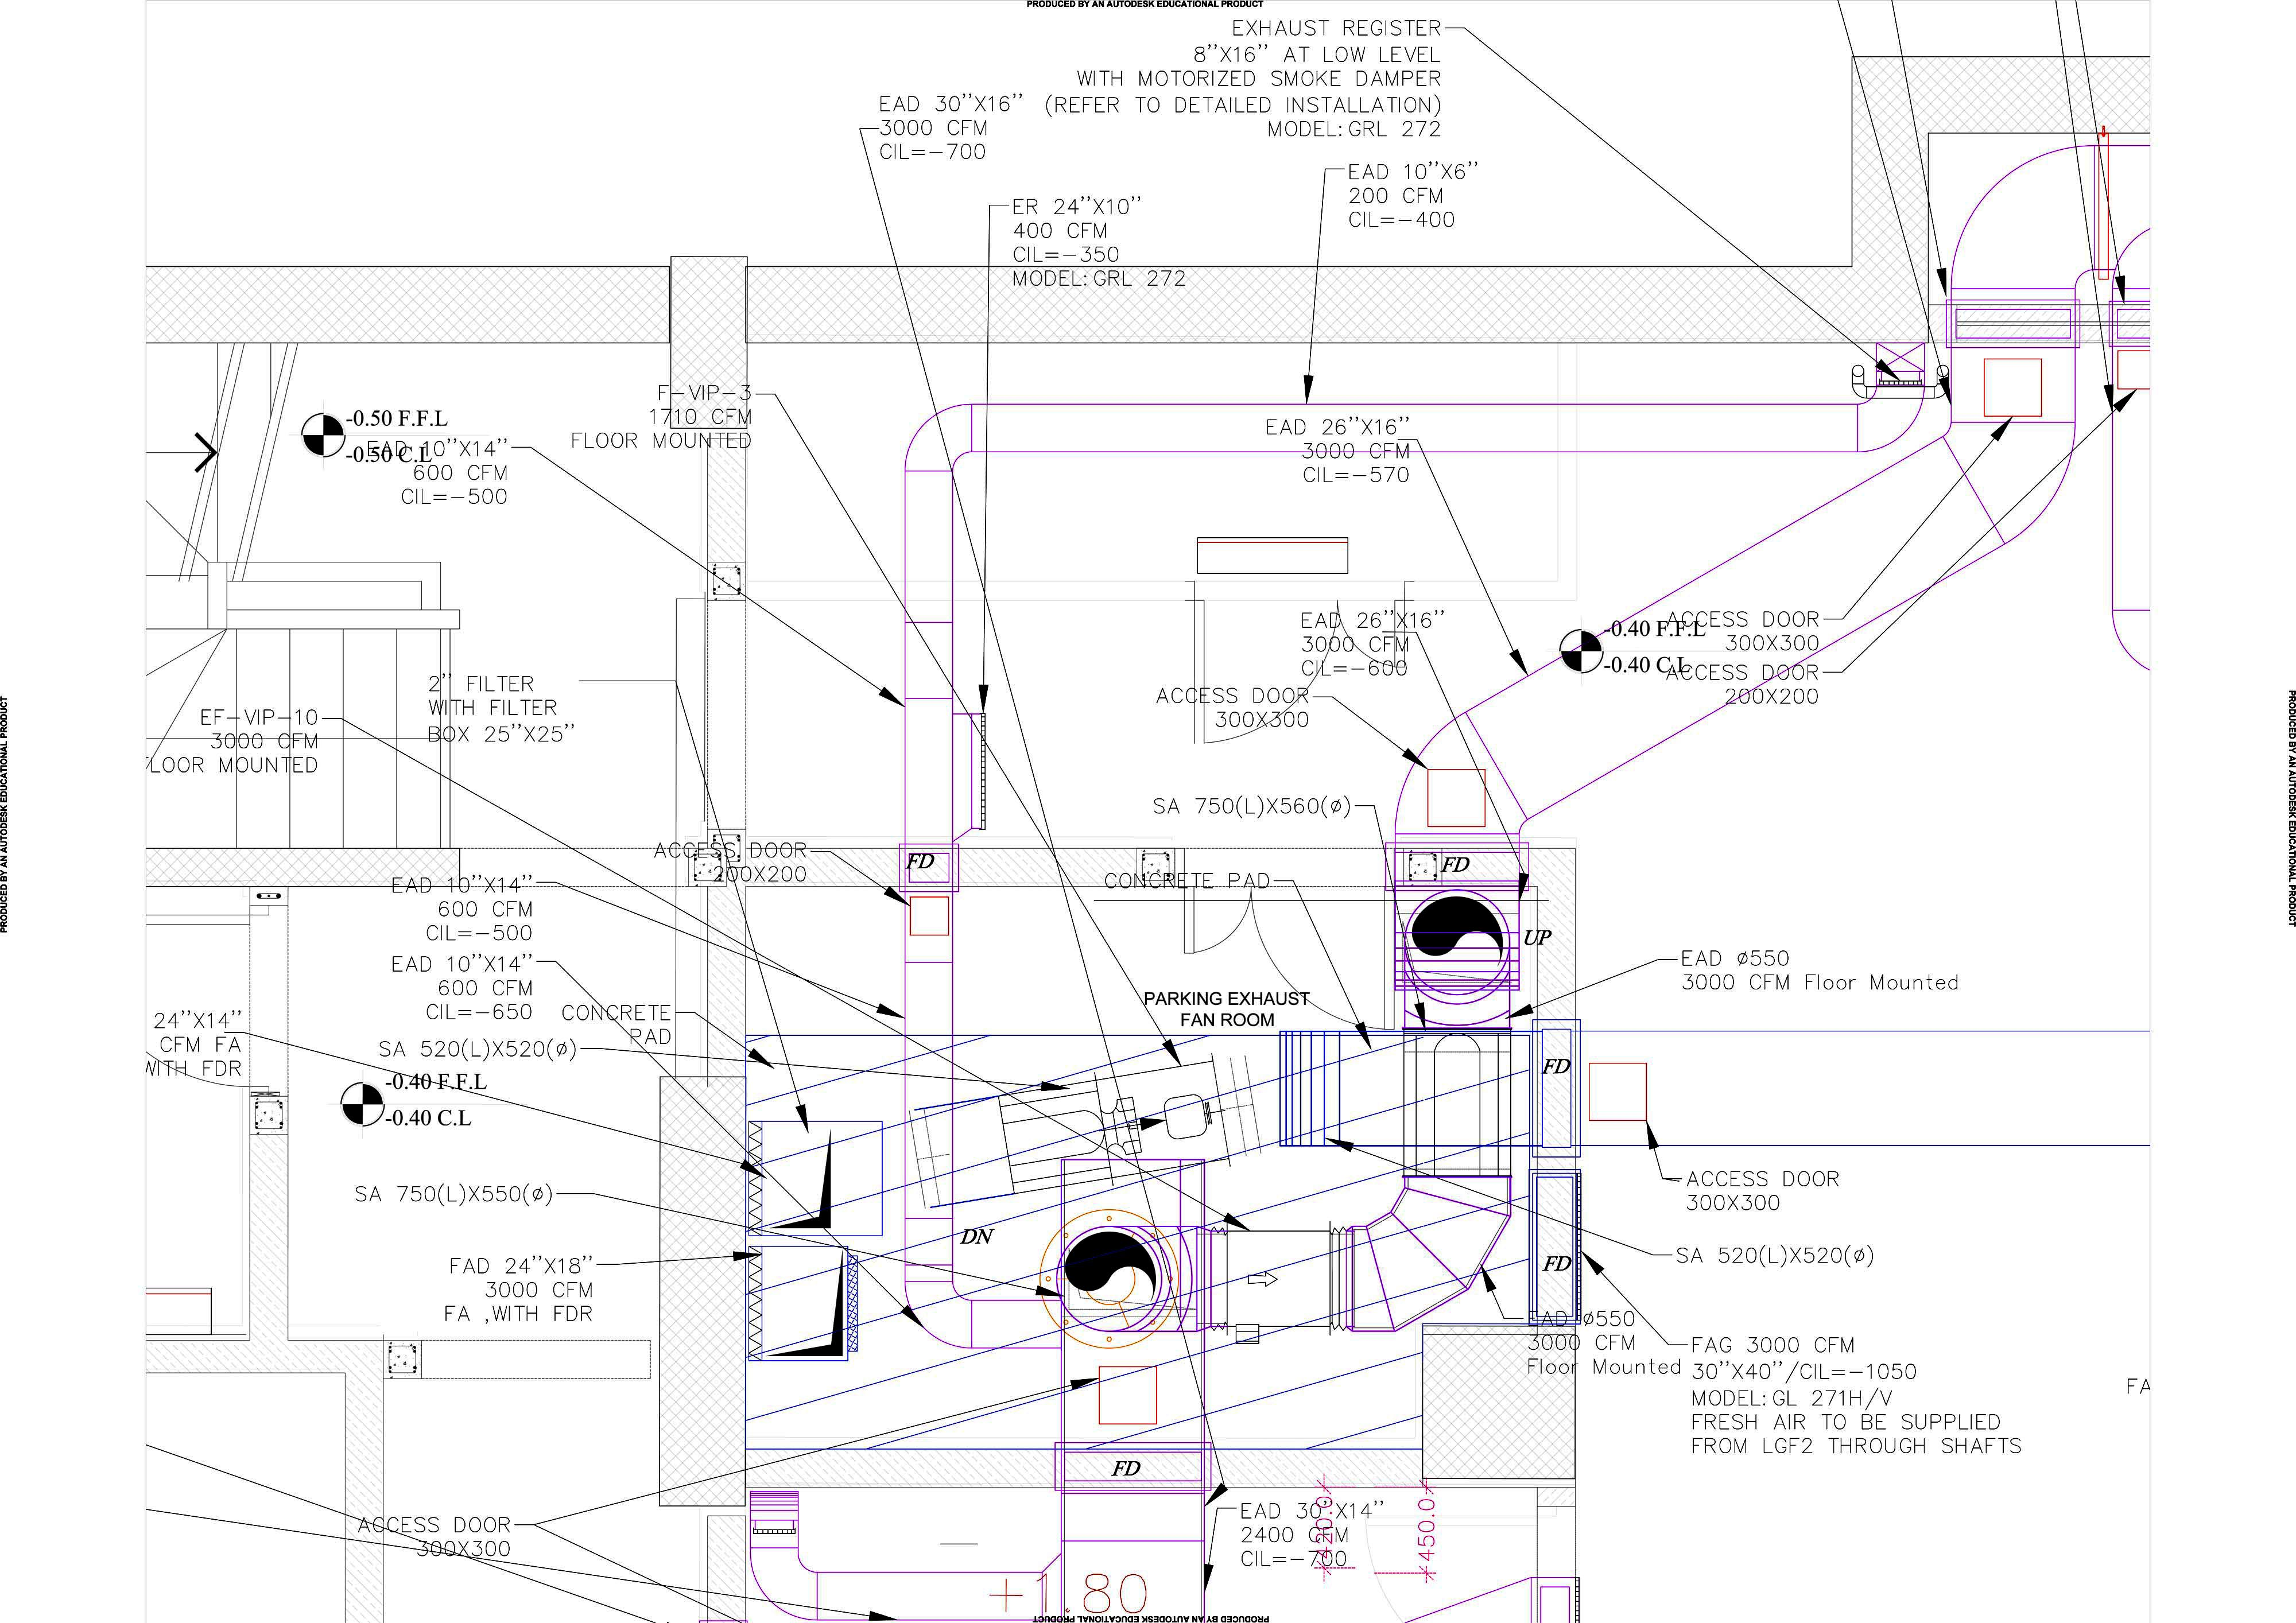 hvac drawing review checklist wiring diagram Mechanical Engineering HVAC Plans hvac drawing review checklist schematic diagramhvac shop drawing review schematic diagram engineering drawing checklist template hvac